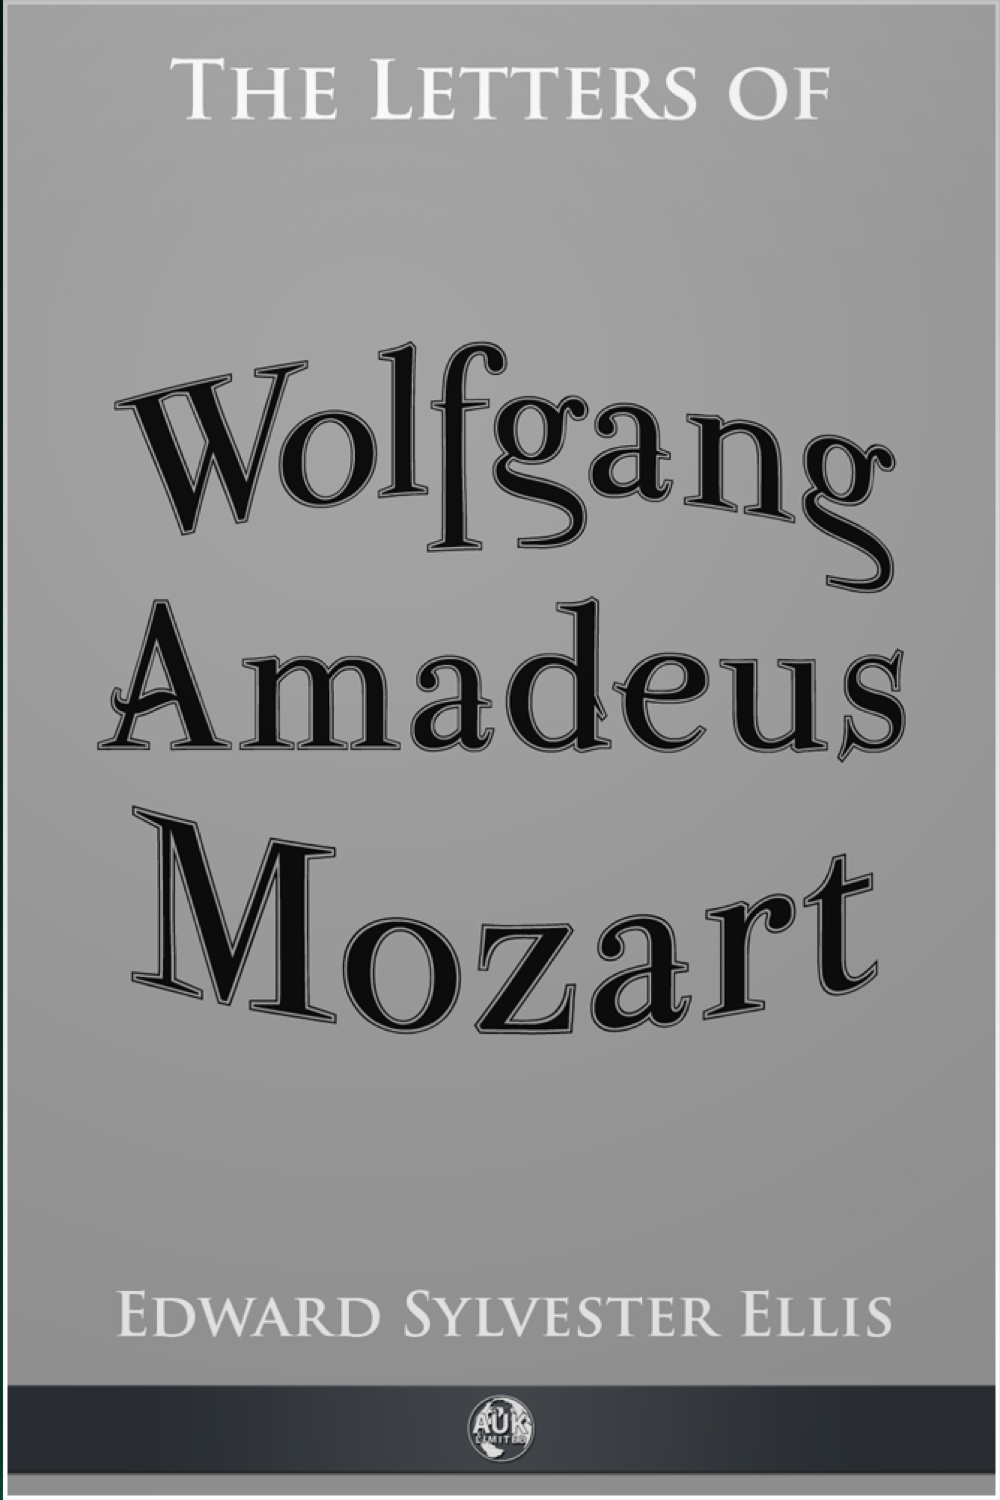 The Letters of Wolfgang Amadeus Mozart By: Edward Sylvester Ellis